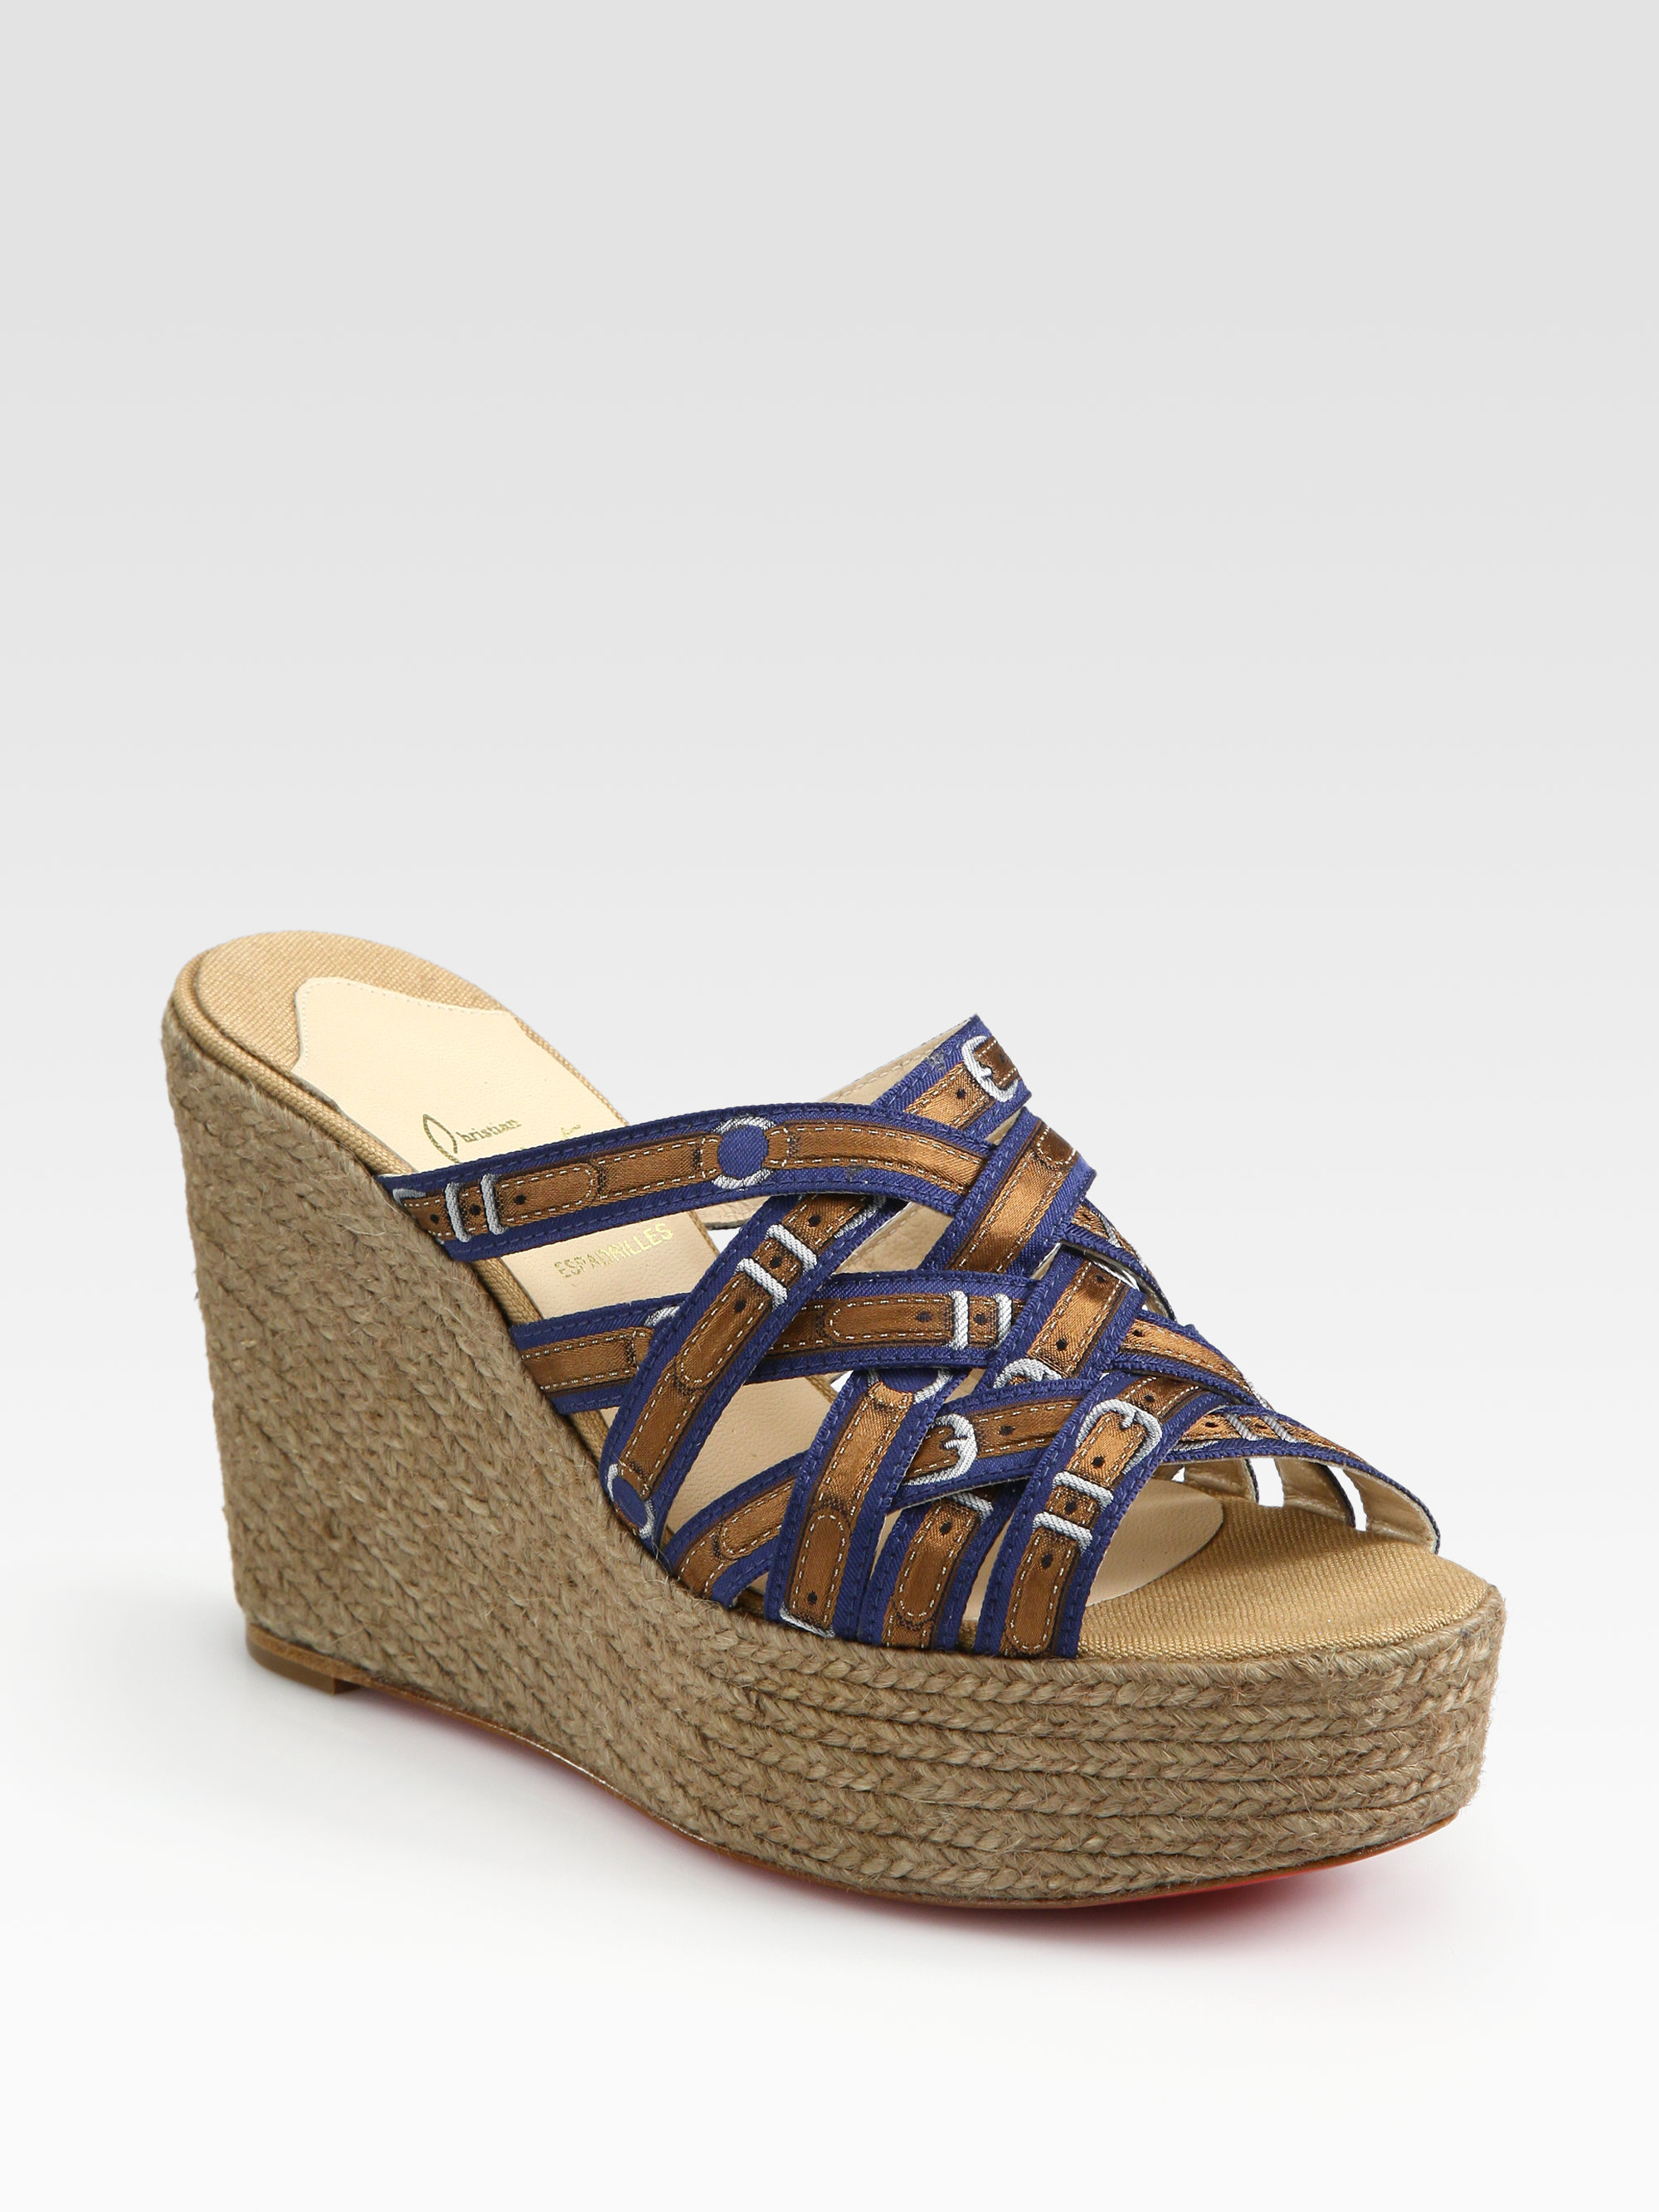 Christian louboutin Crepon Silk Espadrille Wedge Sandals in Brown ...